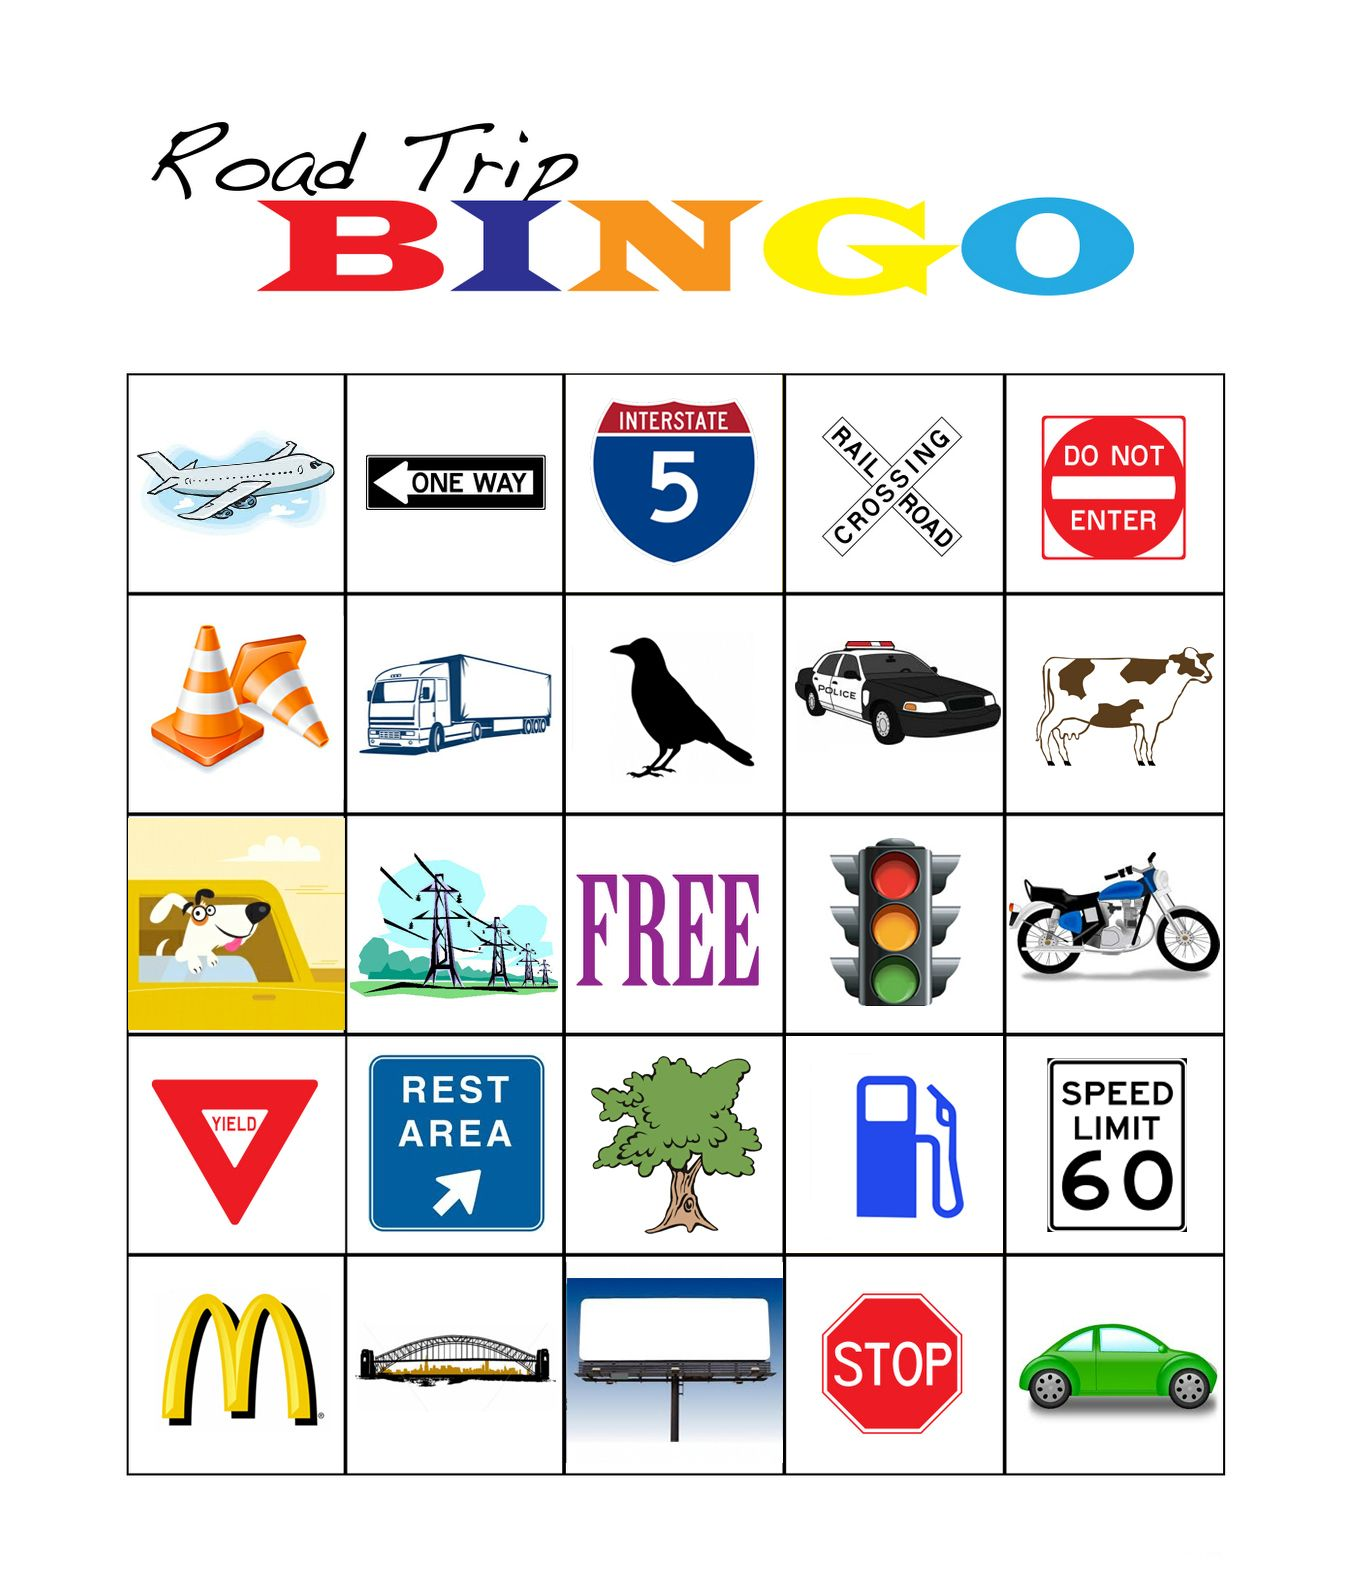 This is one of the bingo boards I made for my up ing road trip